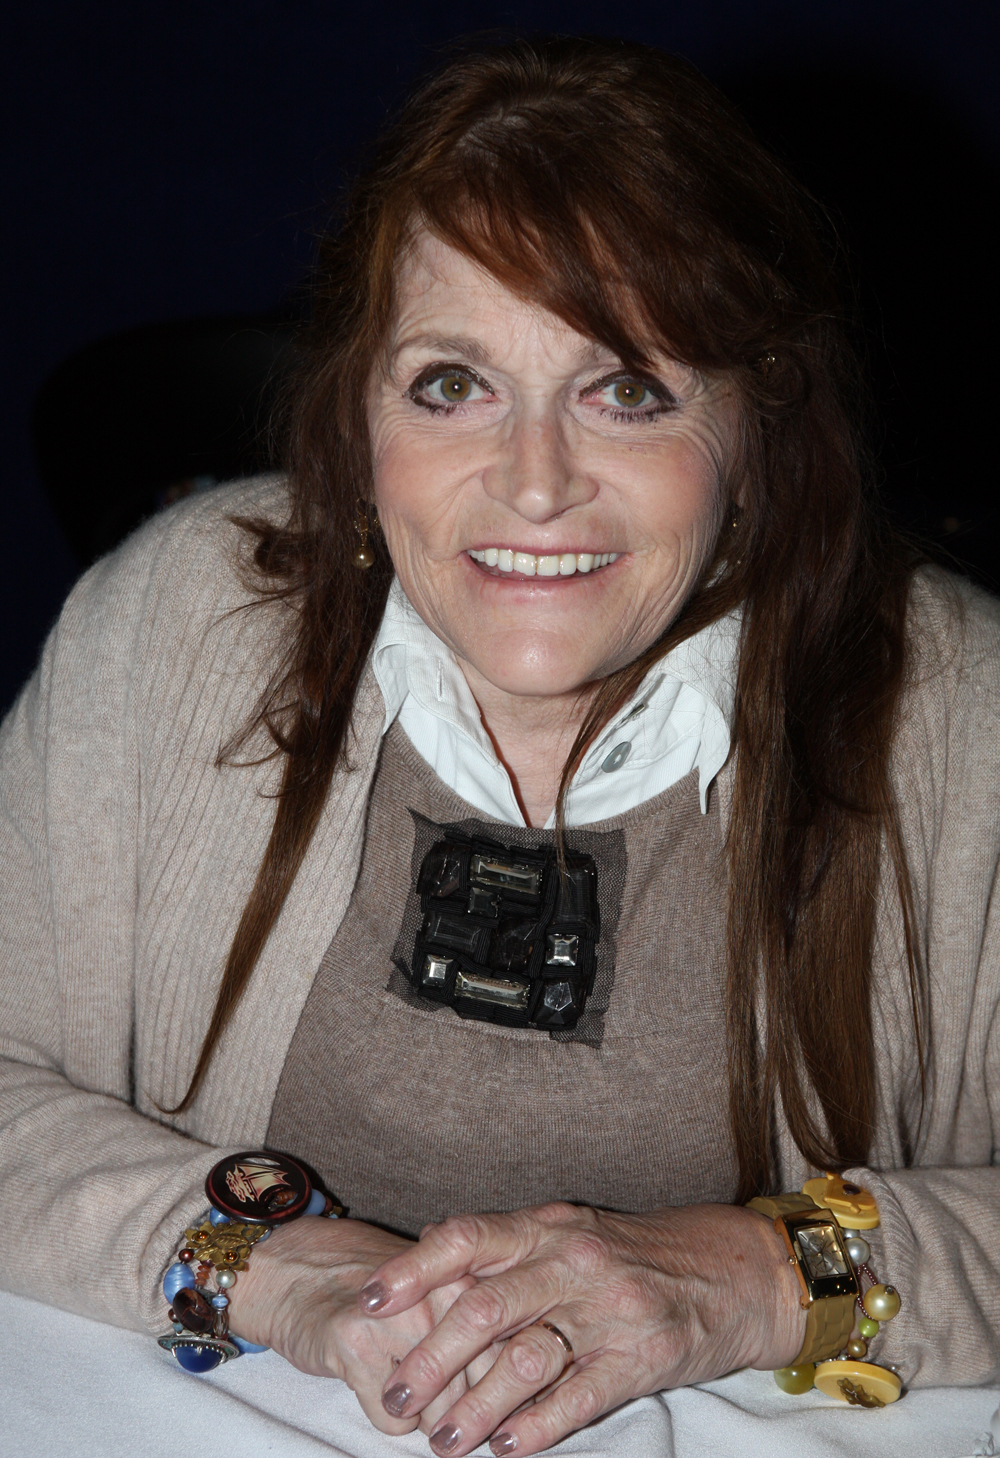 margot kidder - photo #24